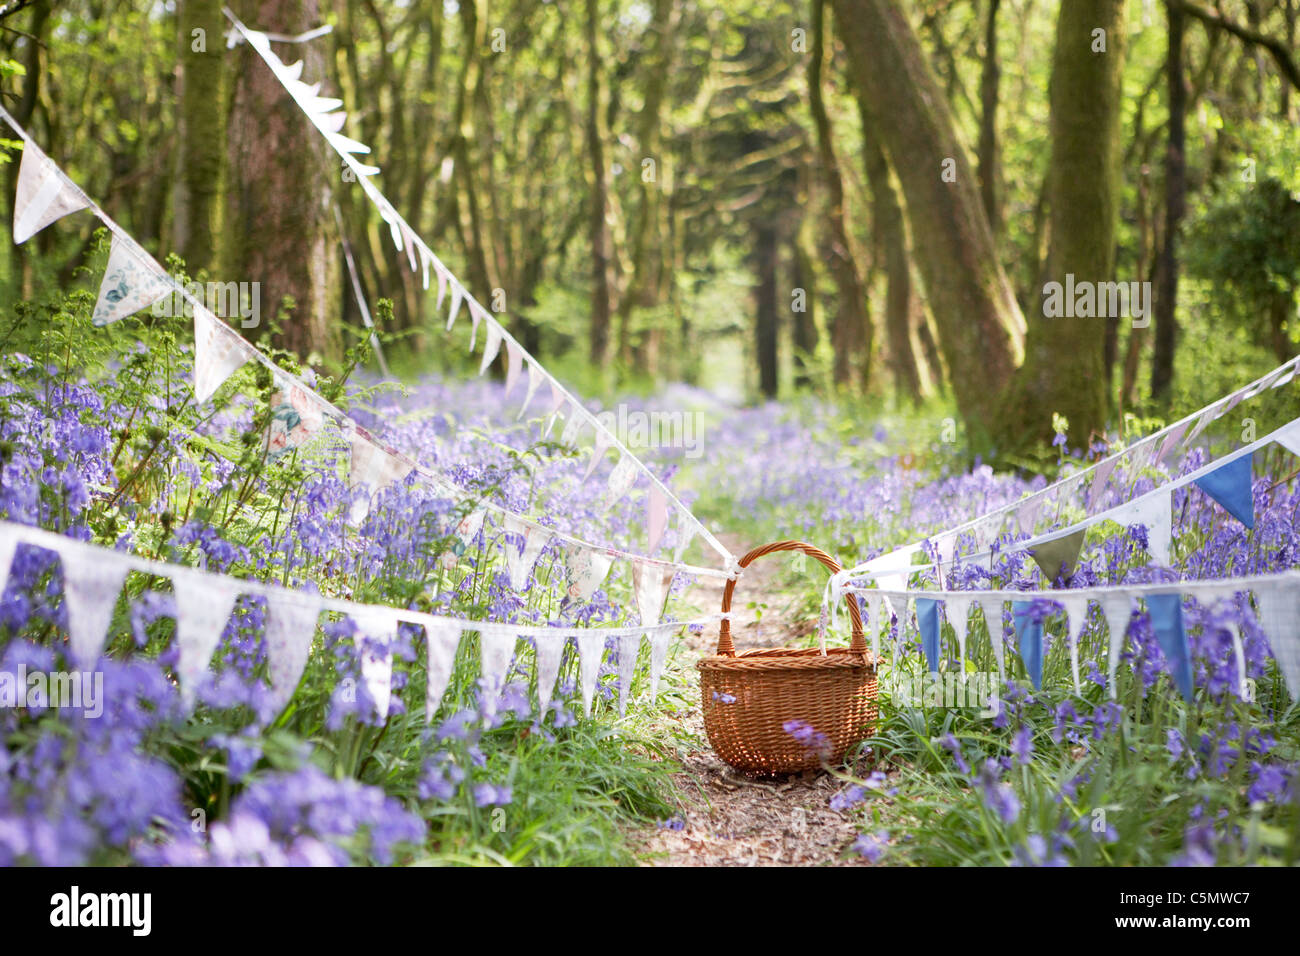 Vintage bunting and wicker basket along a path in Dorset springtime bluebell woodland, England, UKStock Photo